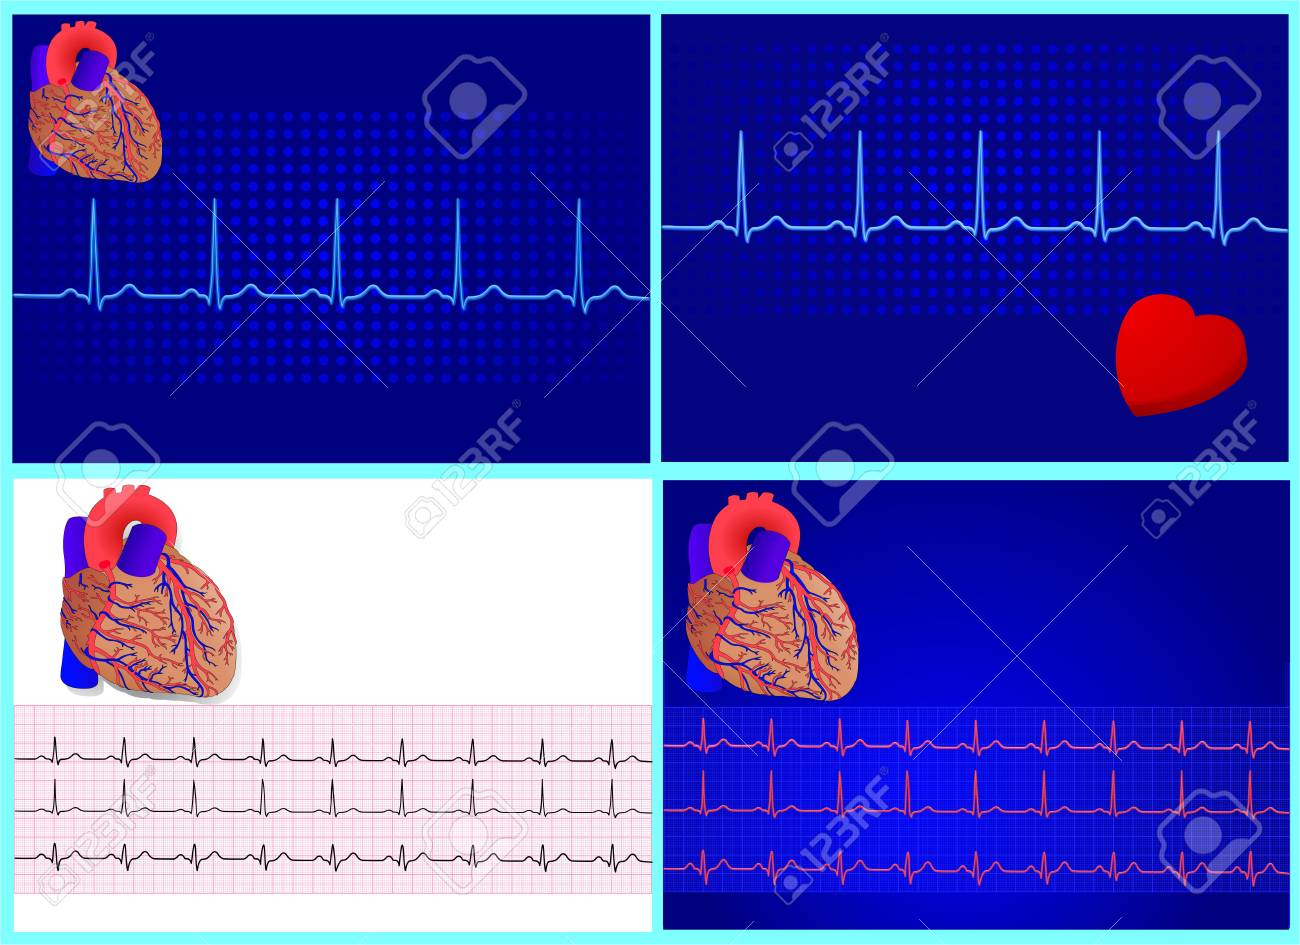 4 heart &amp, cardiograme set for design,  illustration Stock Vector - 6694606